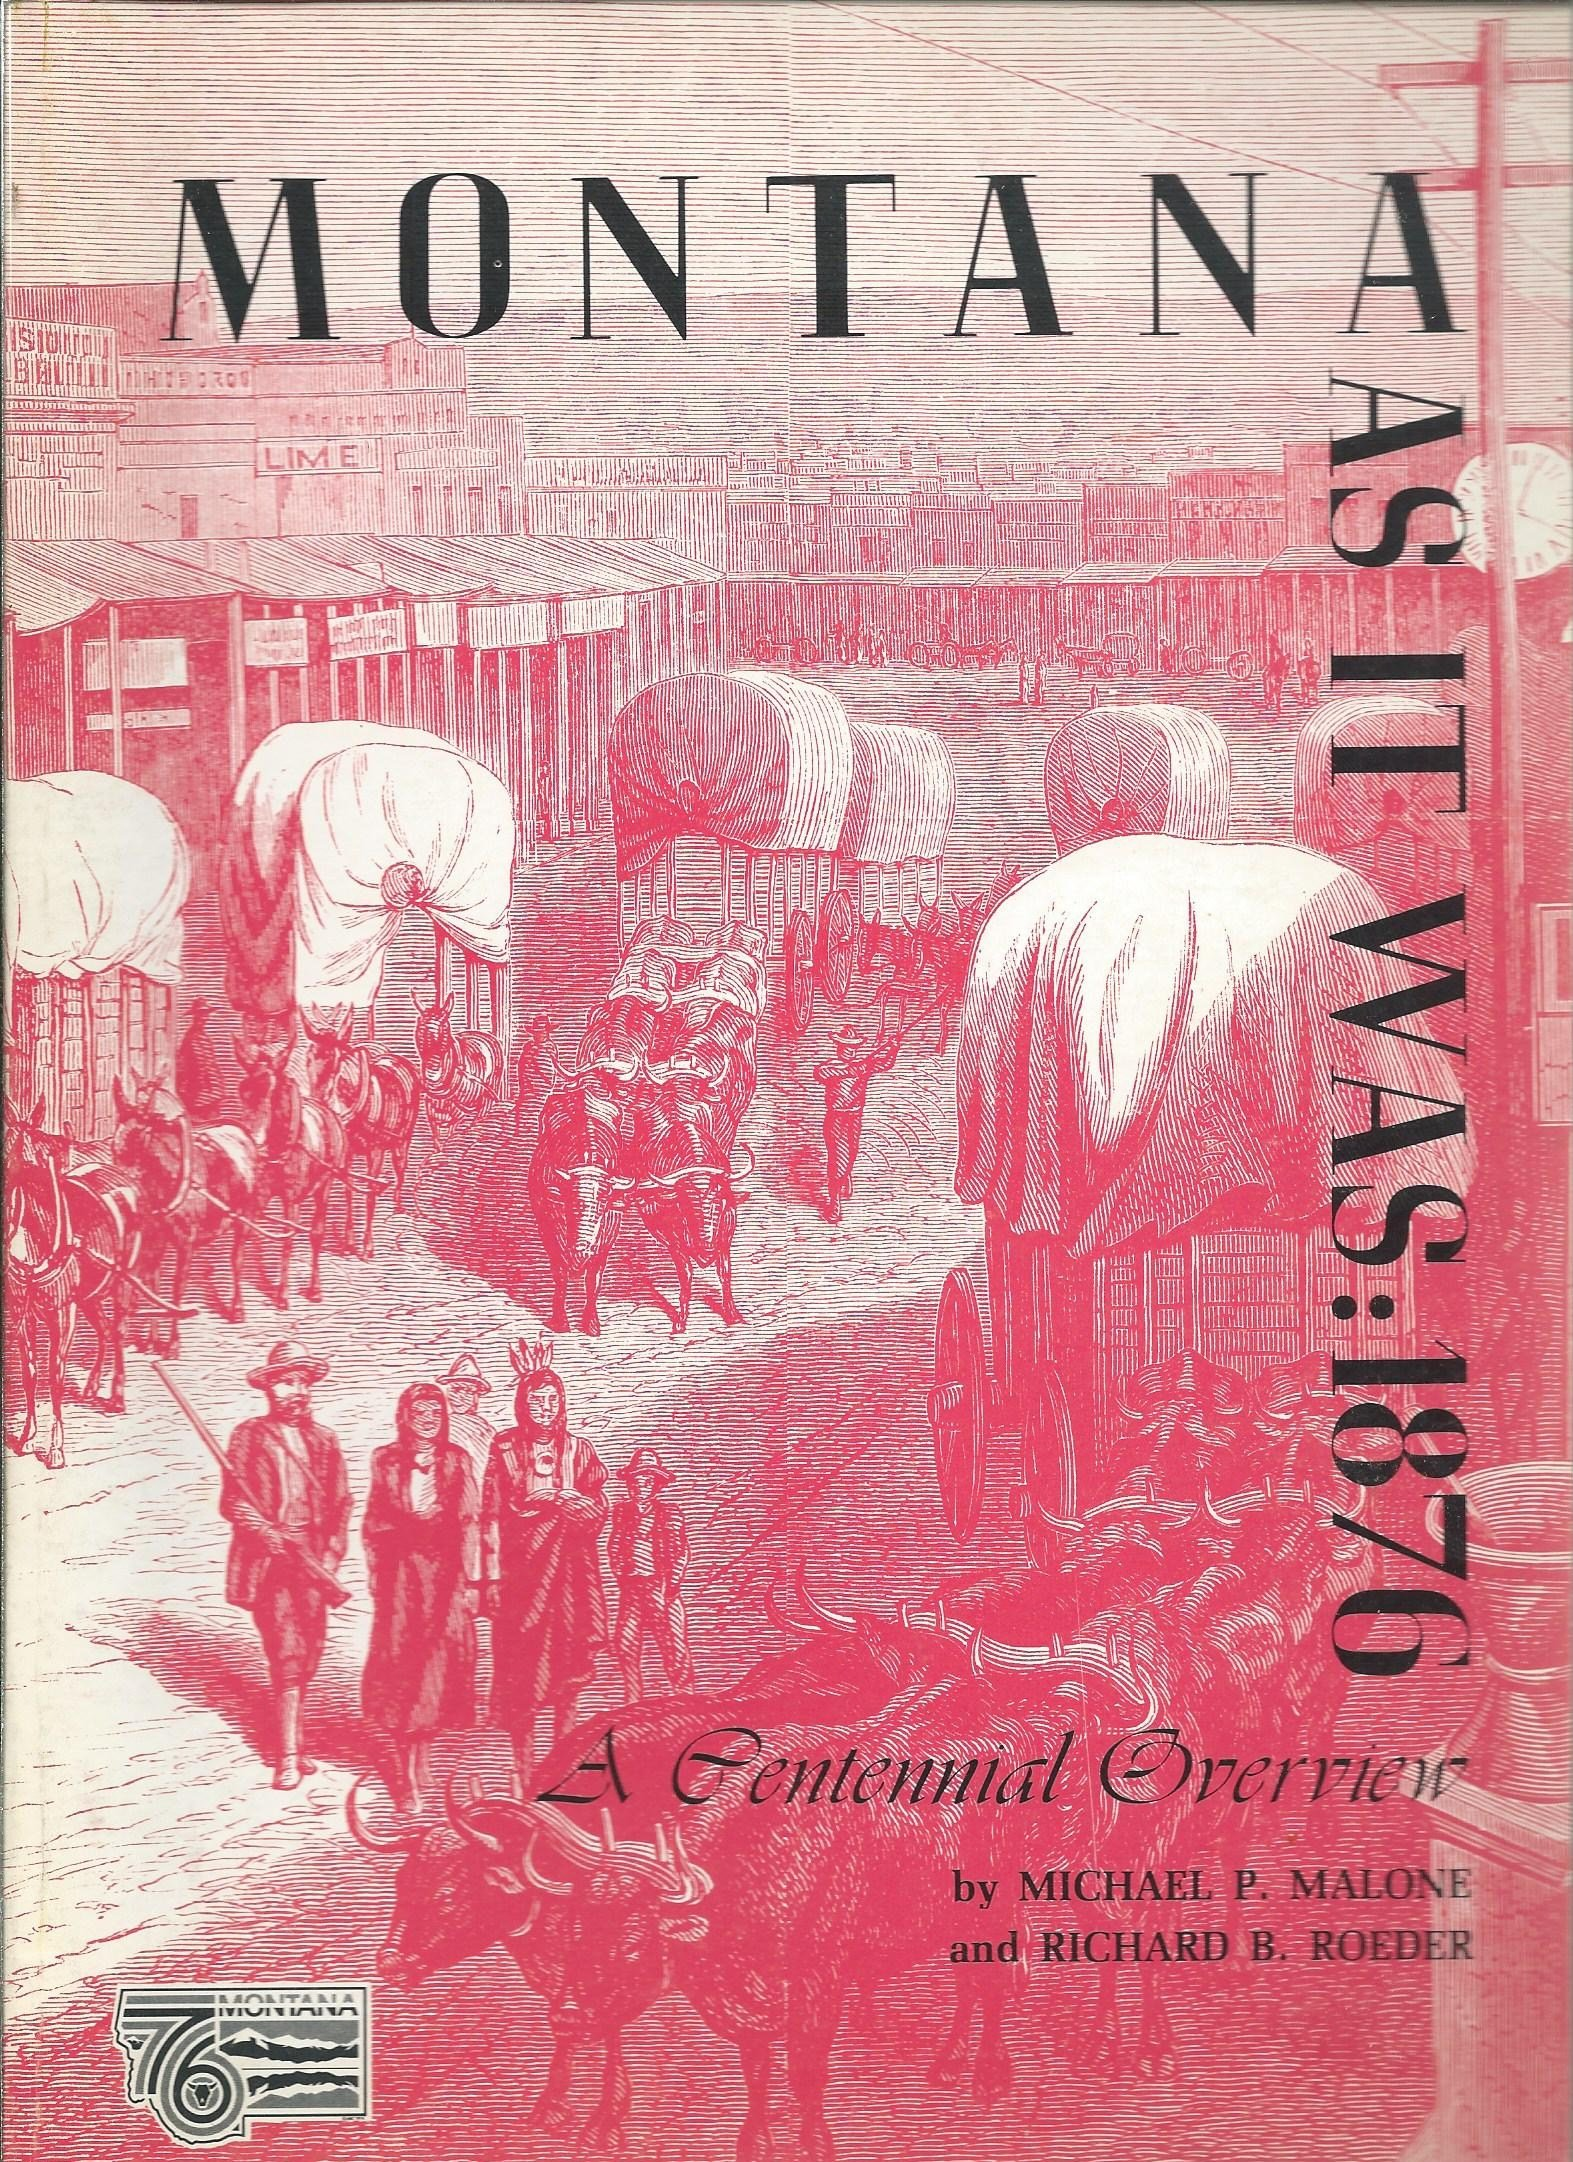 Montana as it was, 1876: A centennial overview, Malone, Michael P